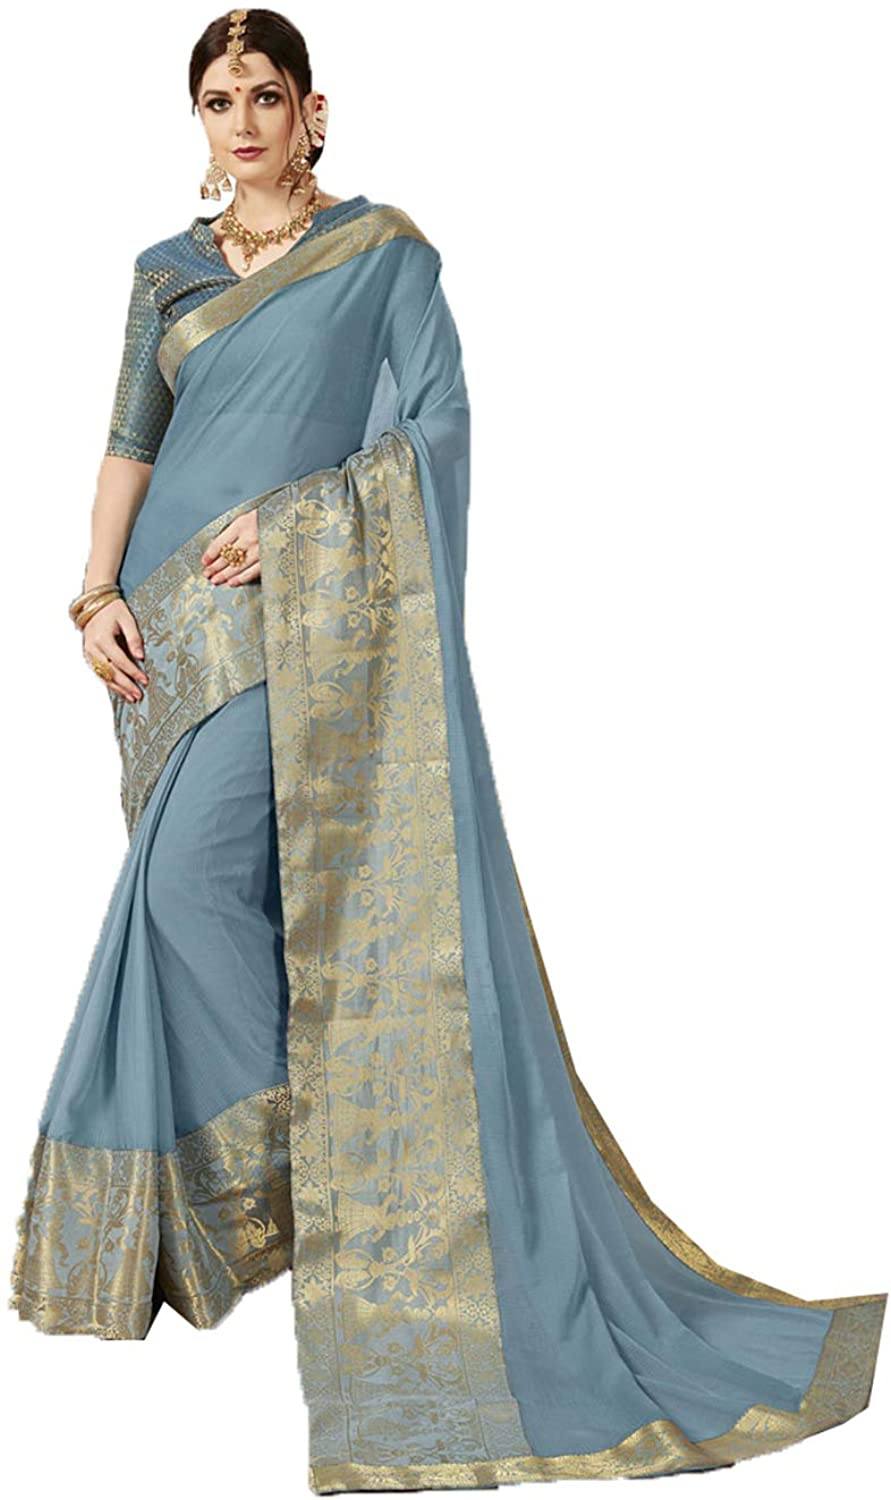 Saree for Women Bollywood Wedding Designer Grey Sari with Unstitched Blouse. ICW2559-4